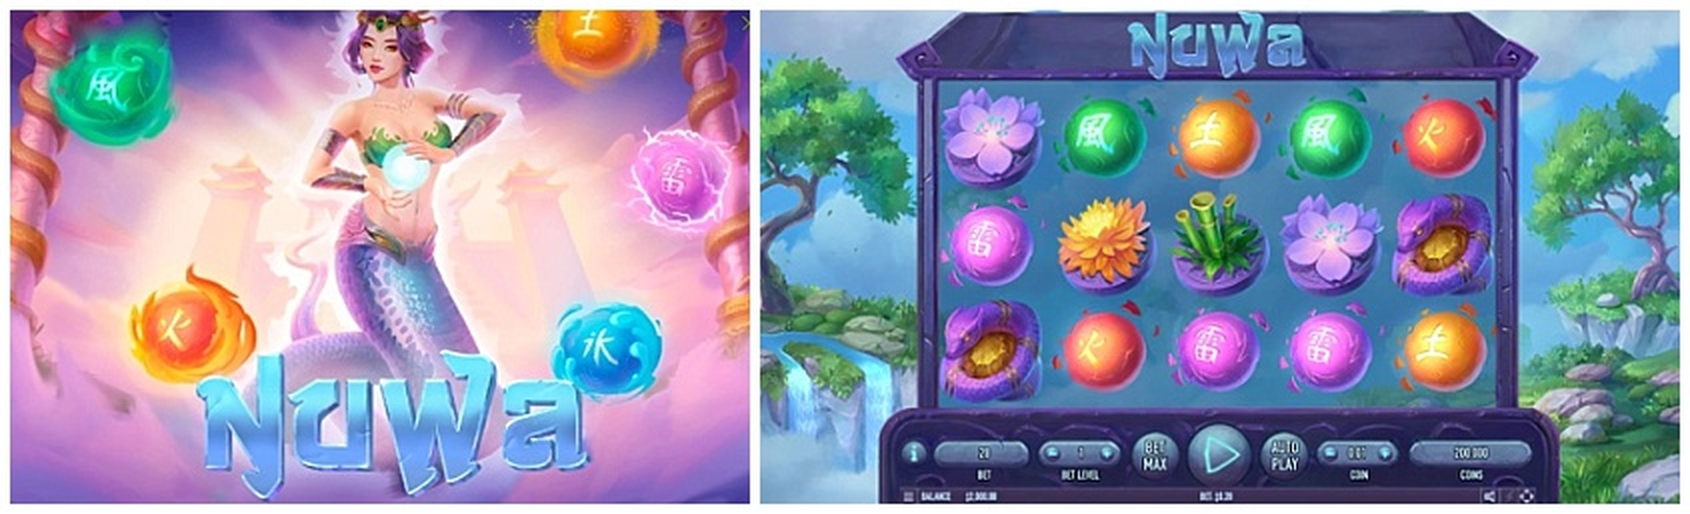 The Nuwa And The Five Elements Online Slot Demo Game by Gameplay Interactive